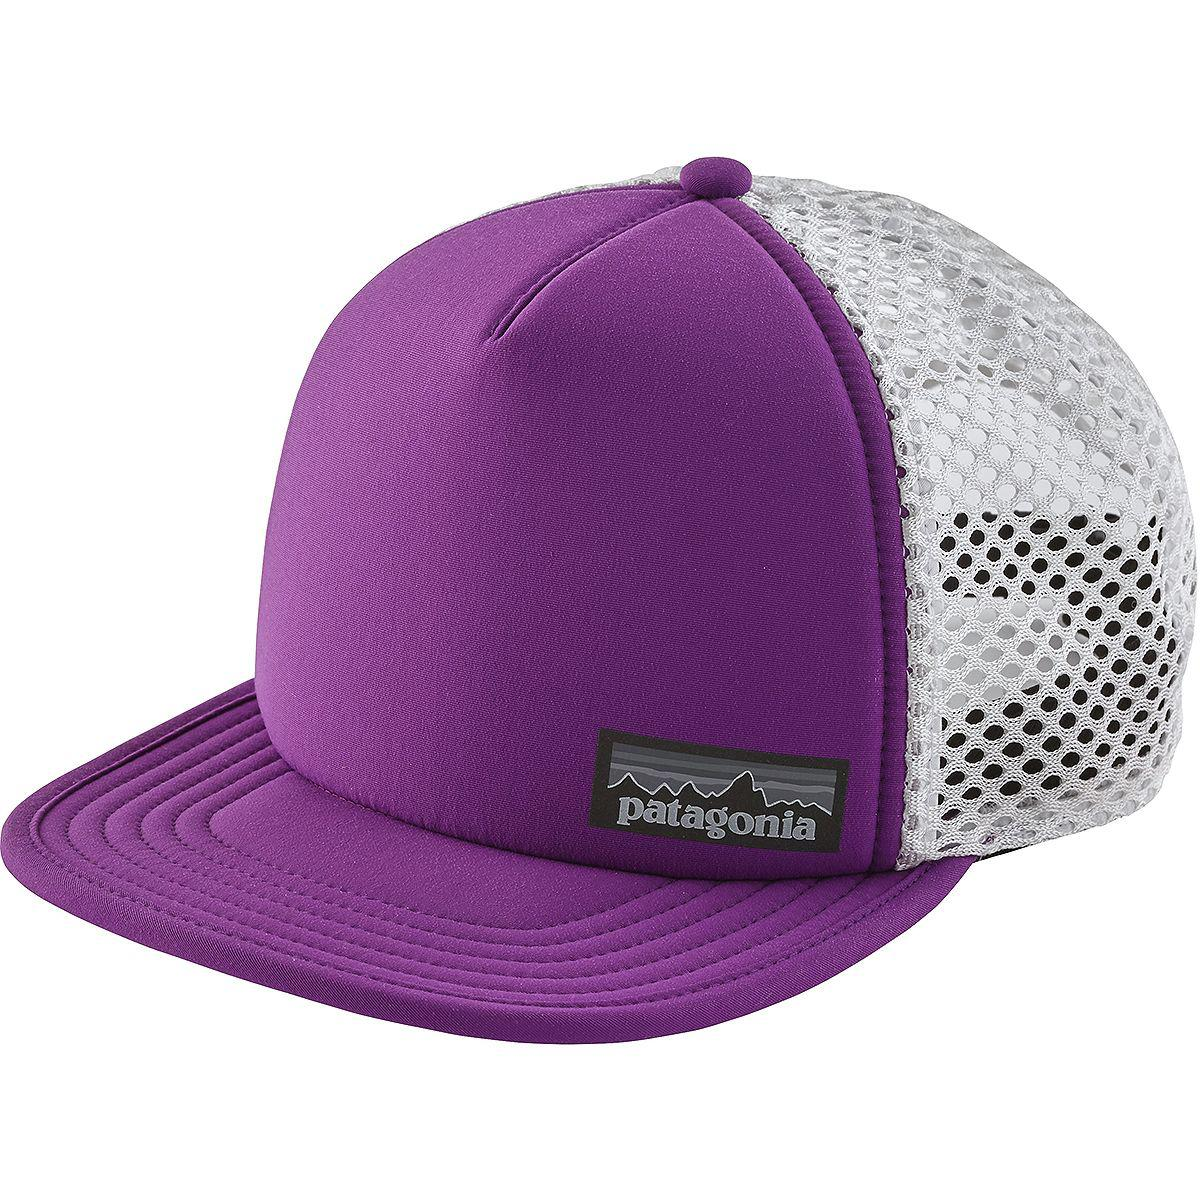 6548d75bc10 Patagonia - Purple Duckbill Trucker Hat - Lyst. View fullscreen